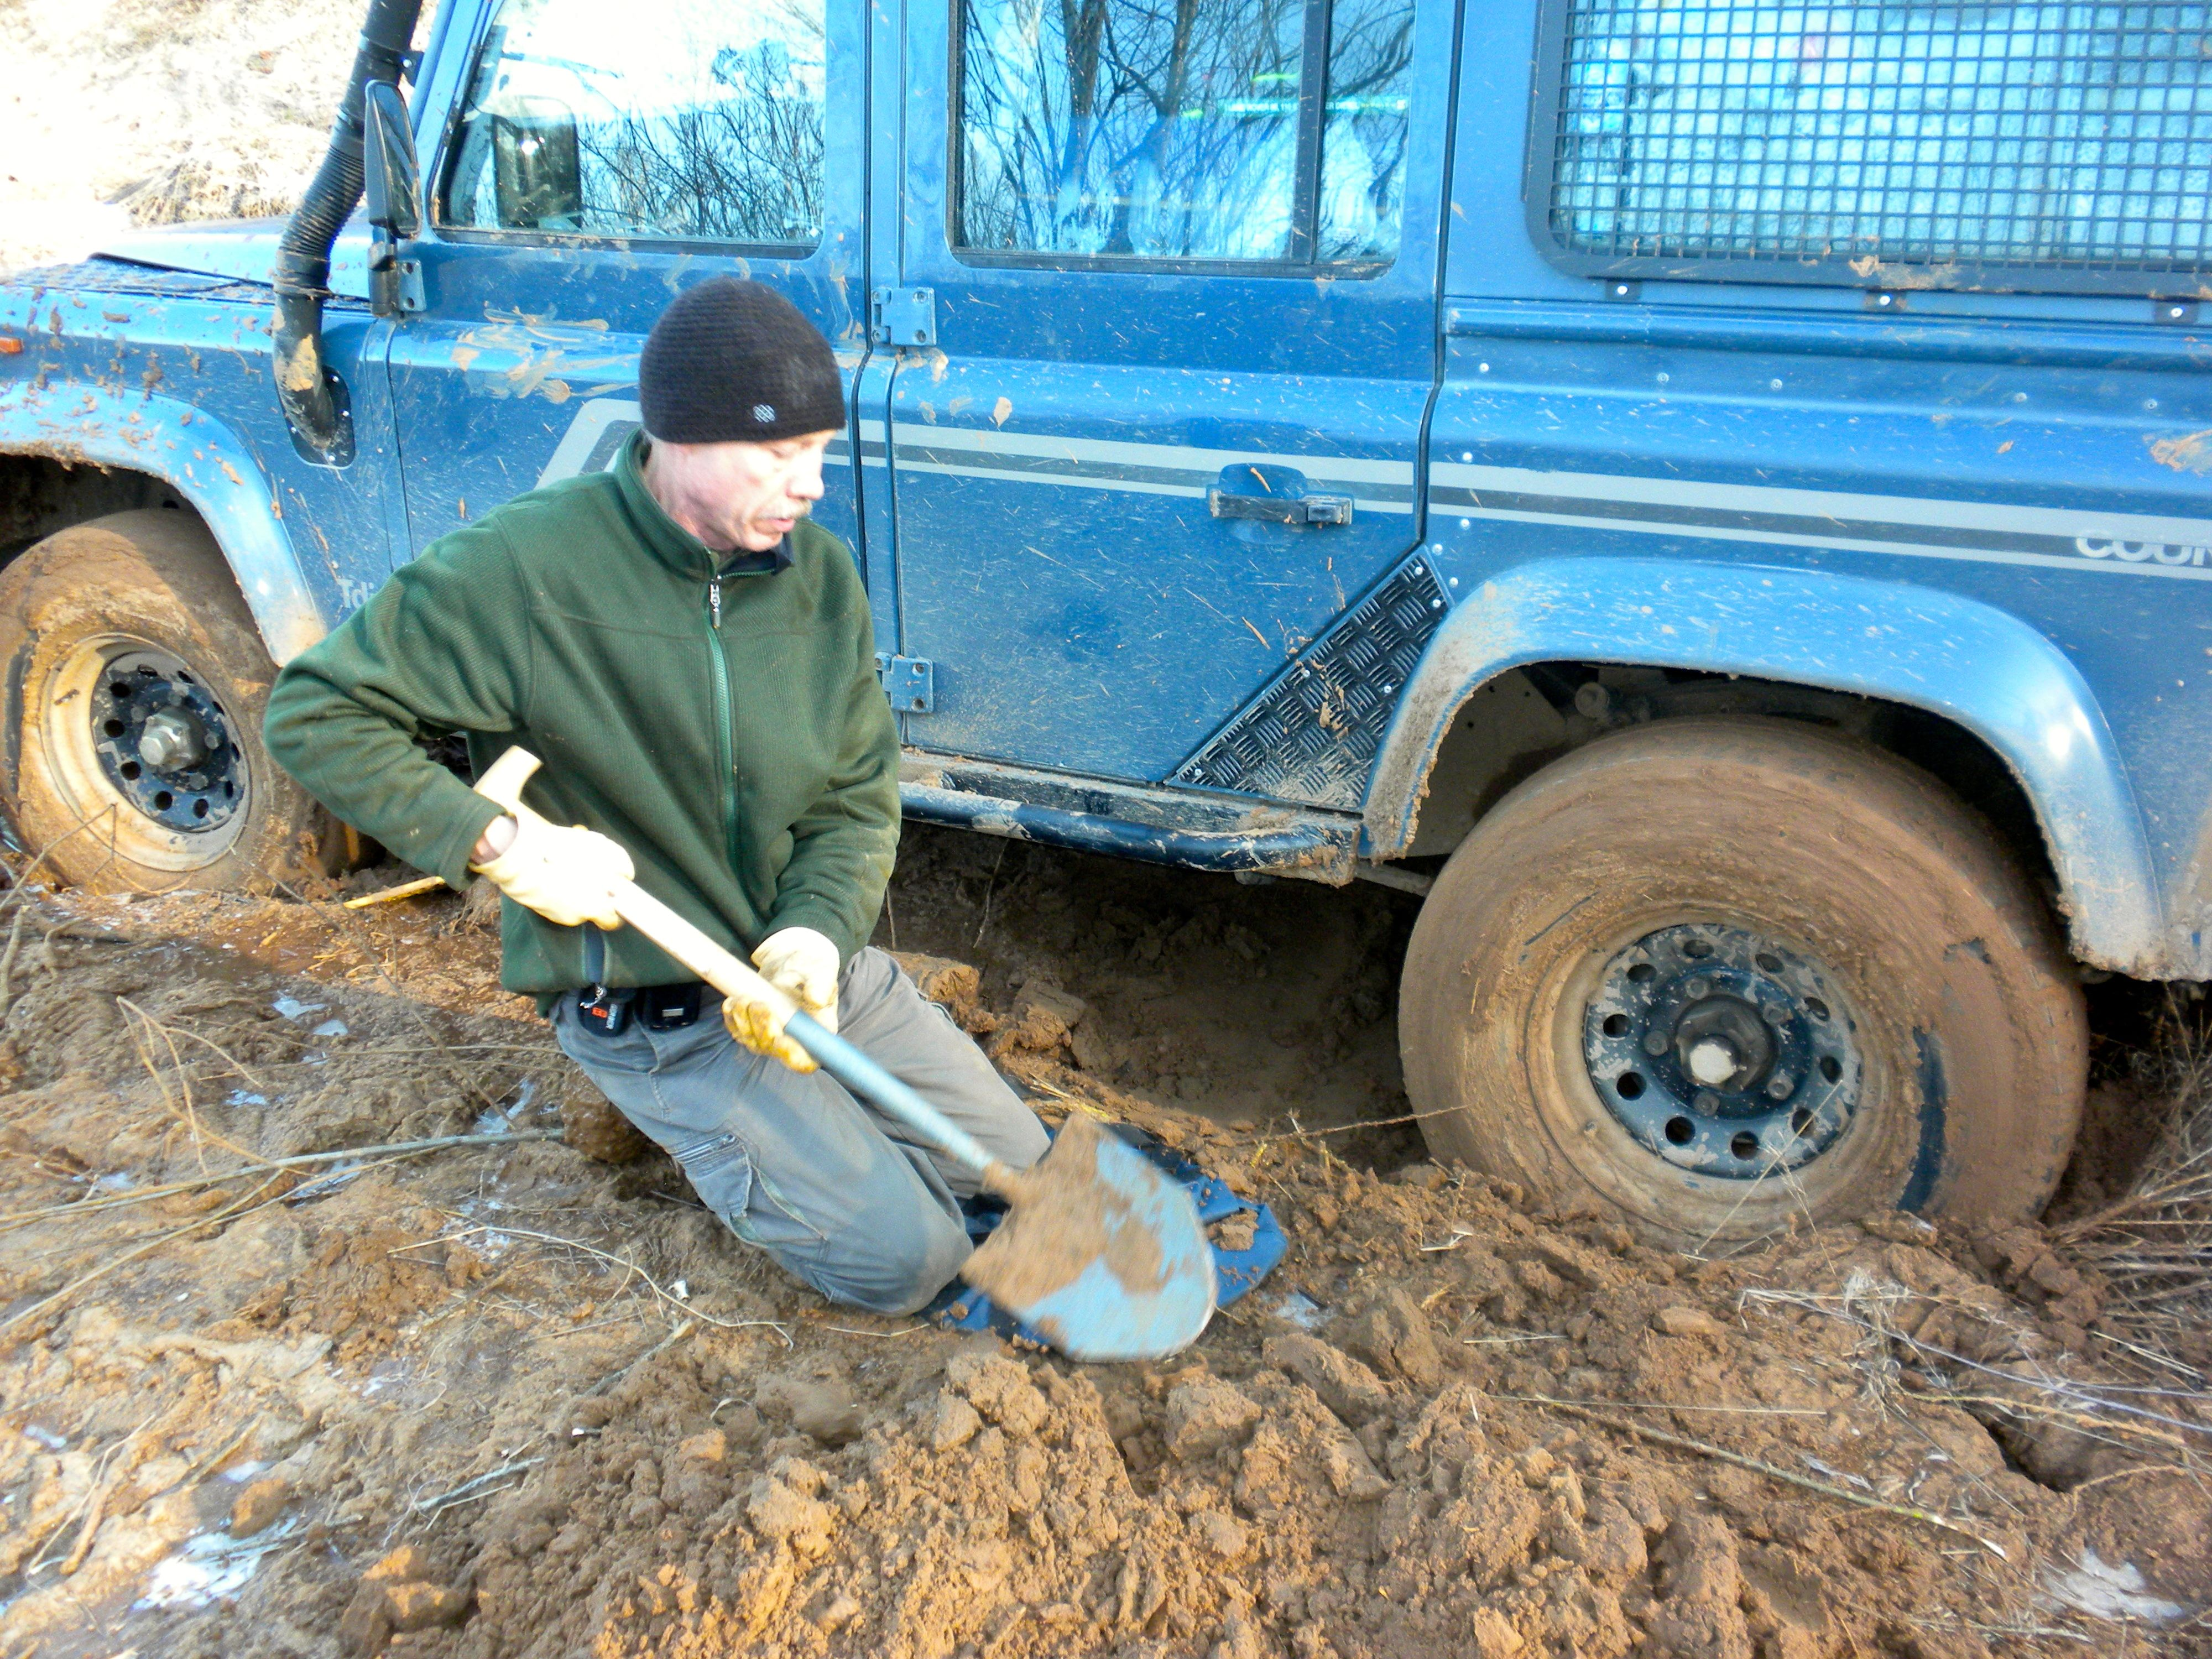 Truck Mud Tires >> 7 Tools to Bring With You Before Getting Stuck in Sand, Snow, or Mud - Recovery Gear Checklist